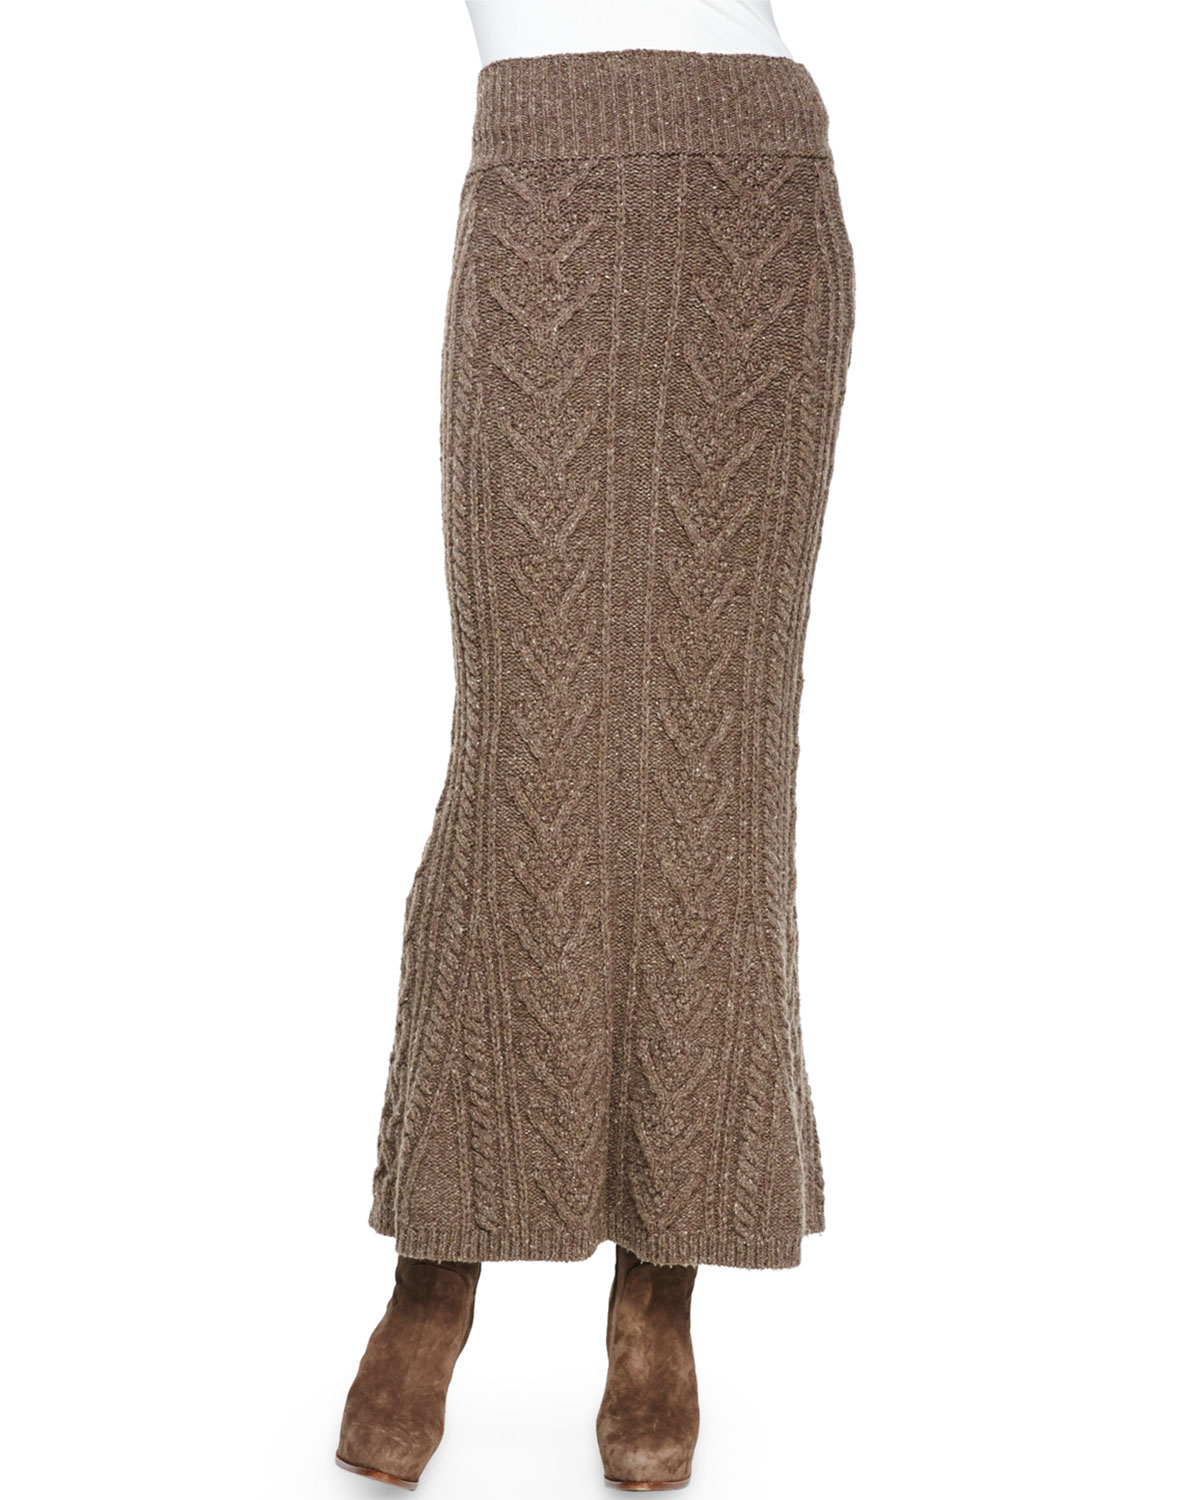 Long Cable-Knit Cashmere Skirt, Truffle Melange